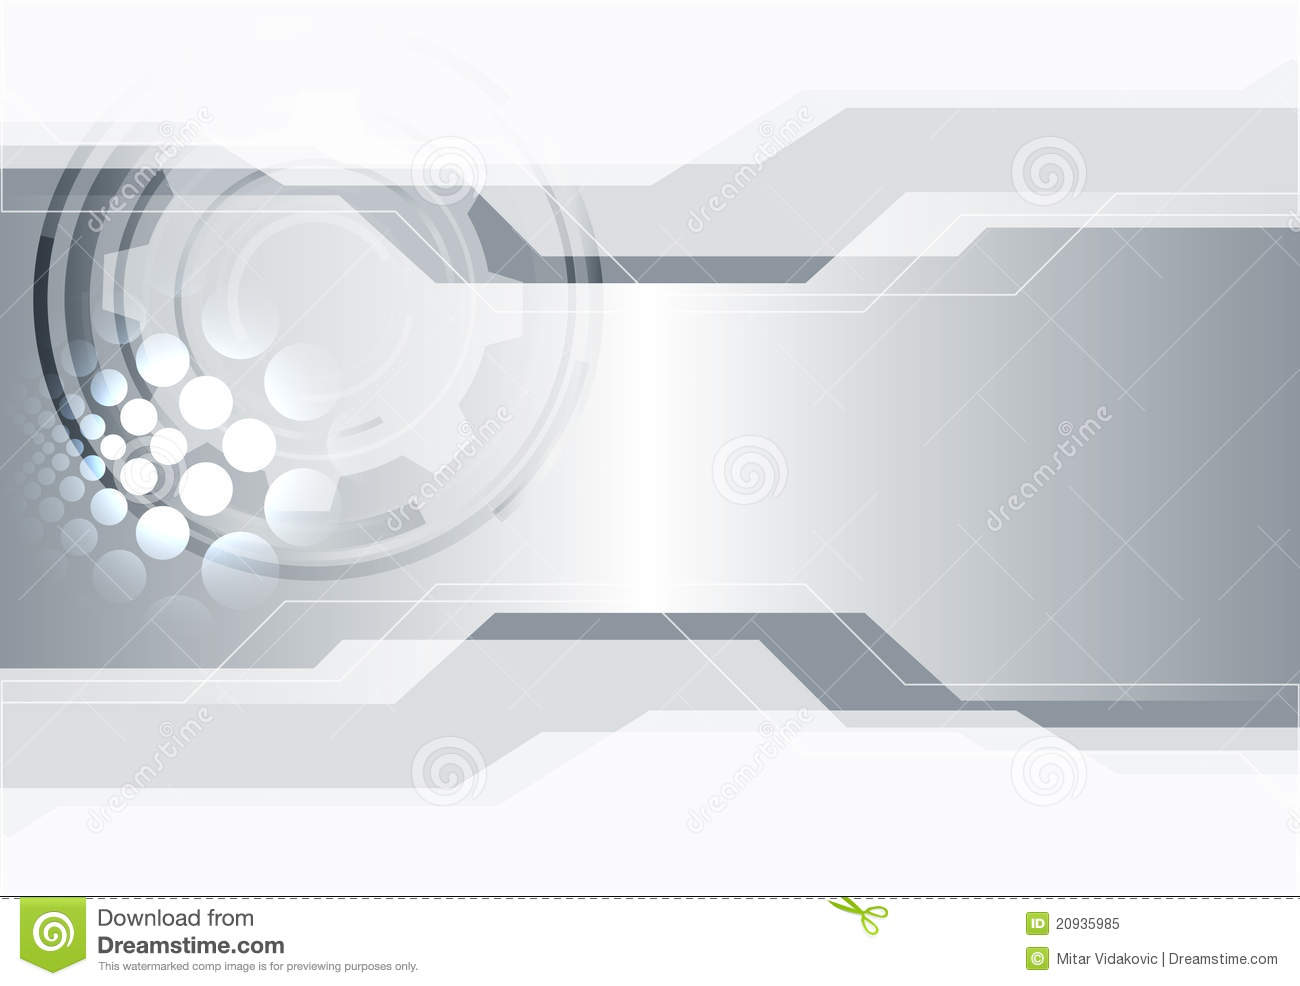 Abstract silver white technology background with space for your text.